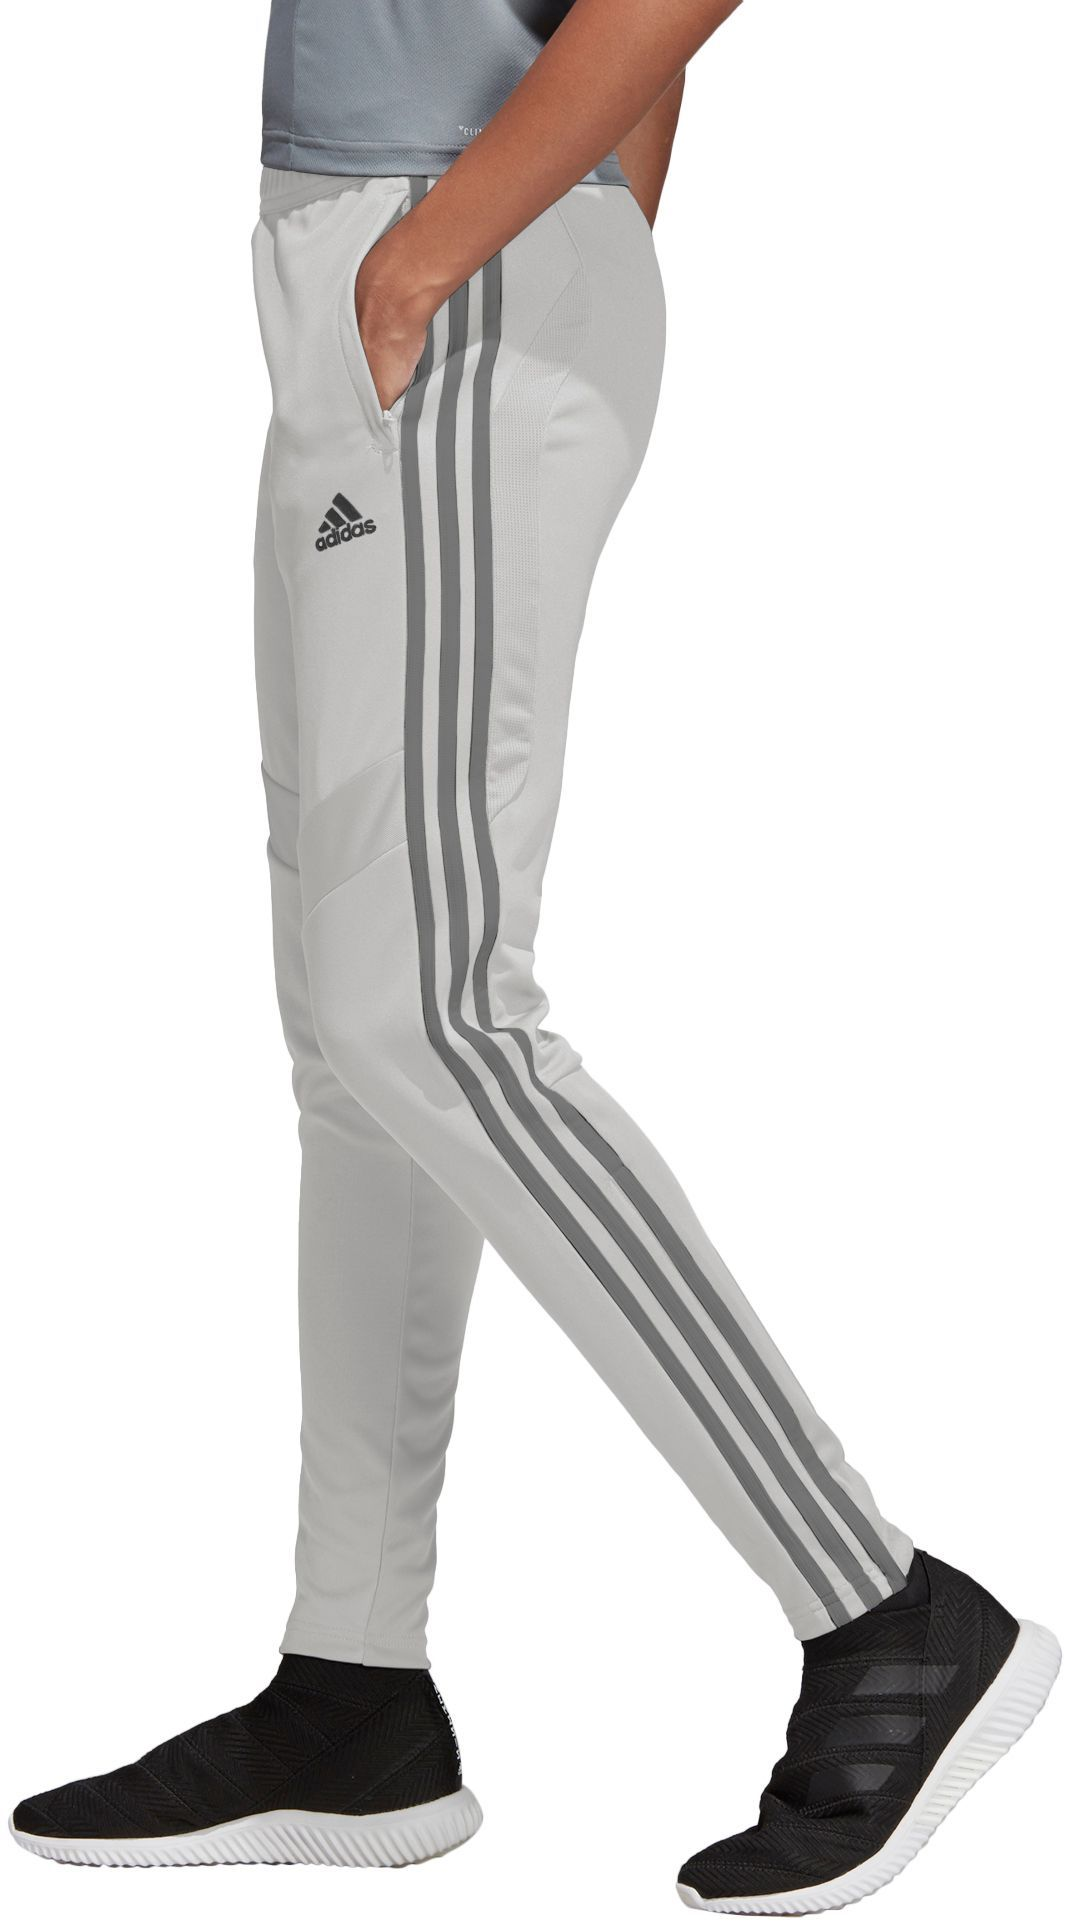 0d1dacaea adidas Women's Tiro 19 Training Pants | Products | Adidas women ...